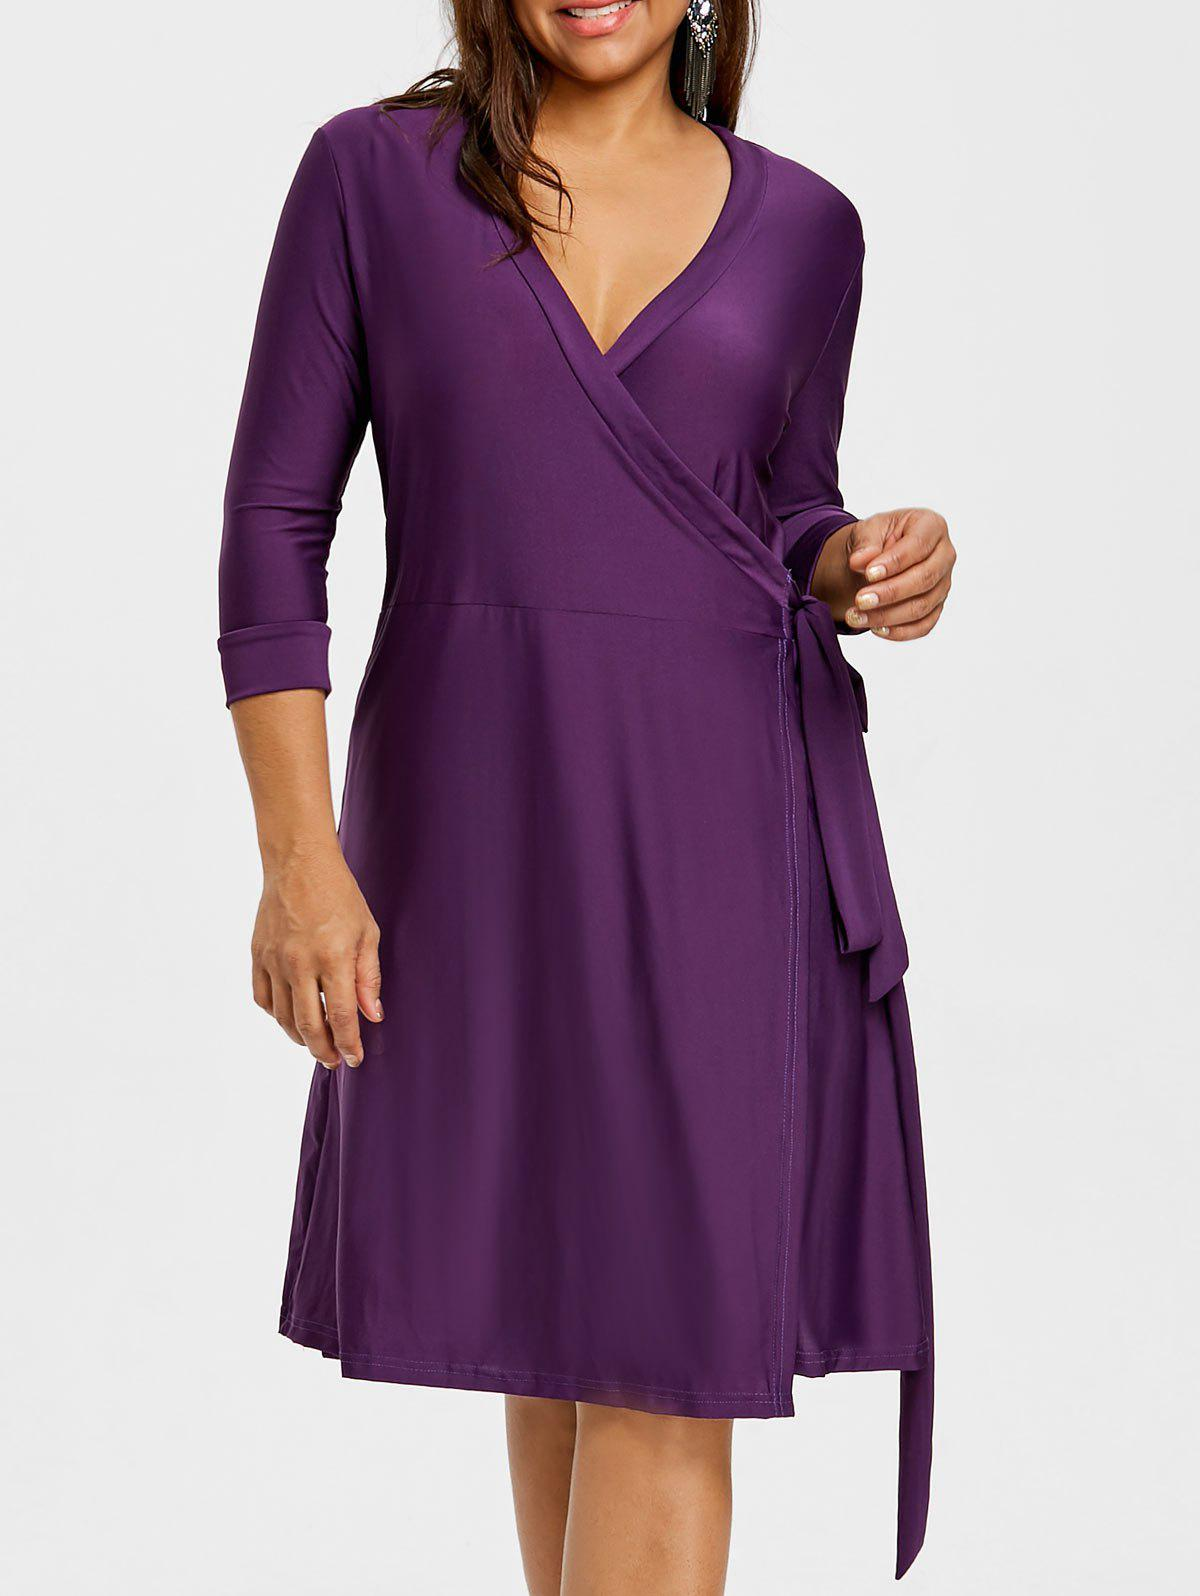 Discount Tie Self Plus Size Jersey Dress